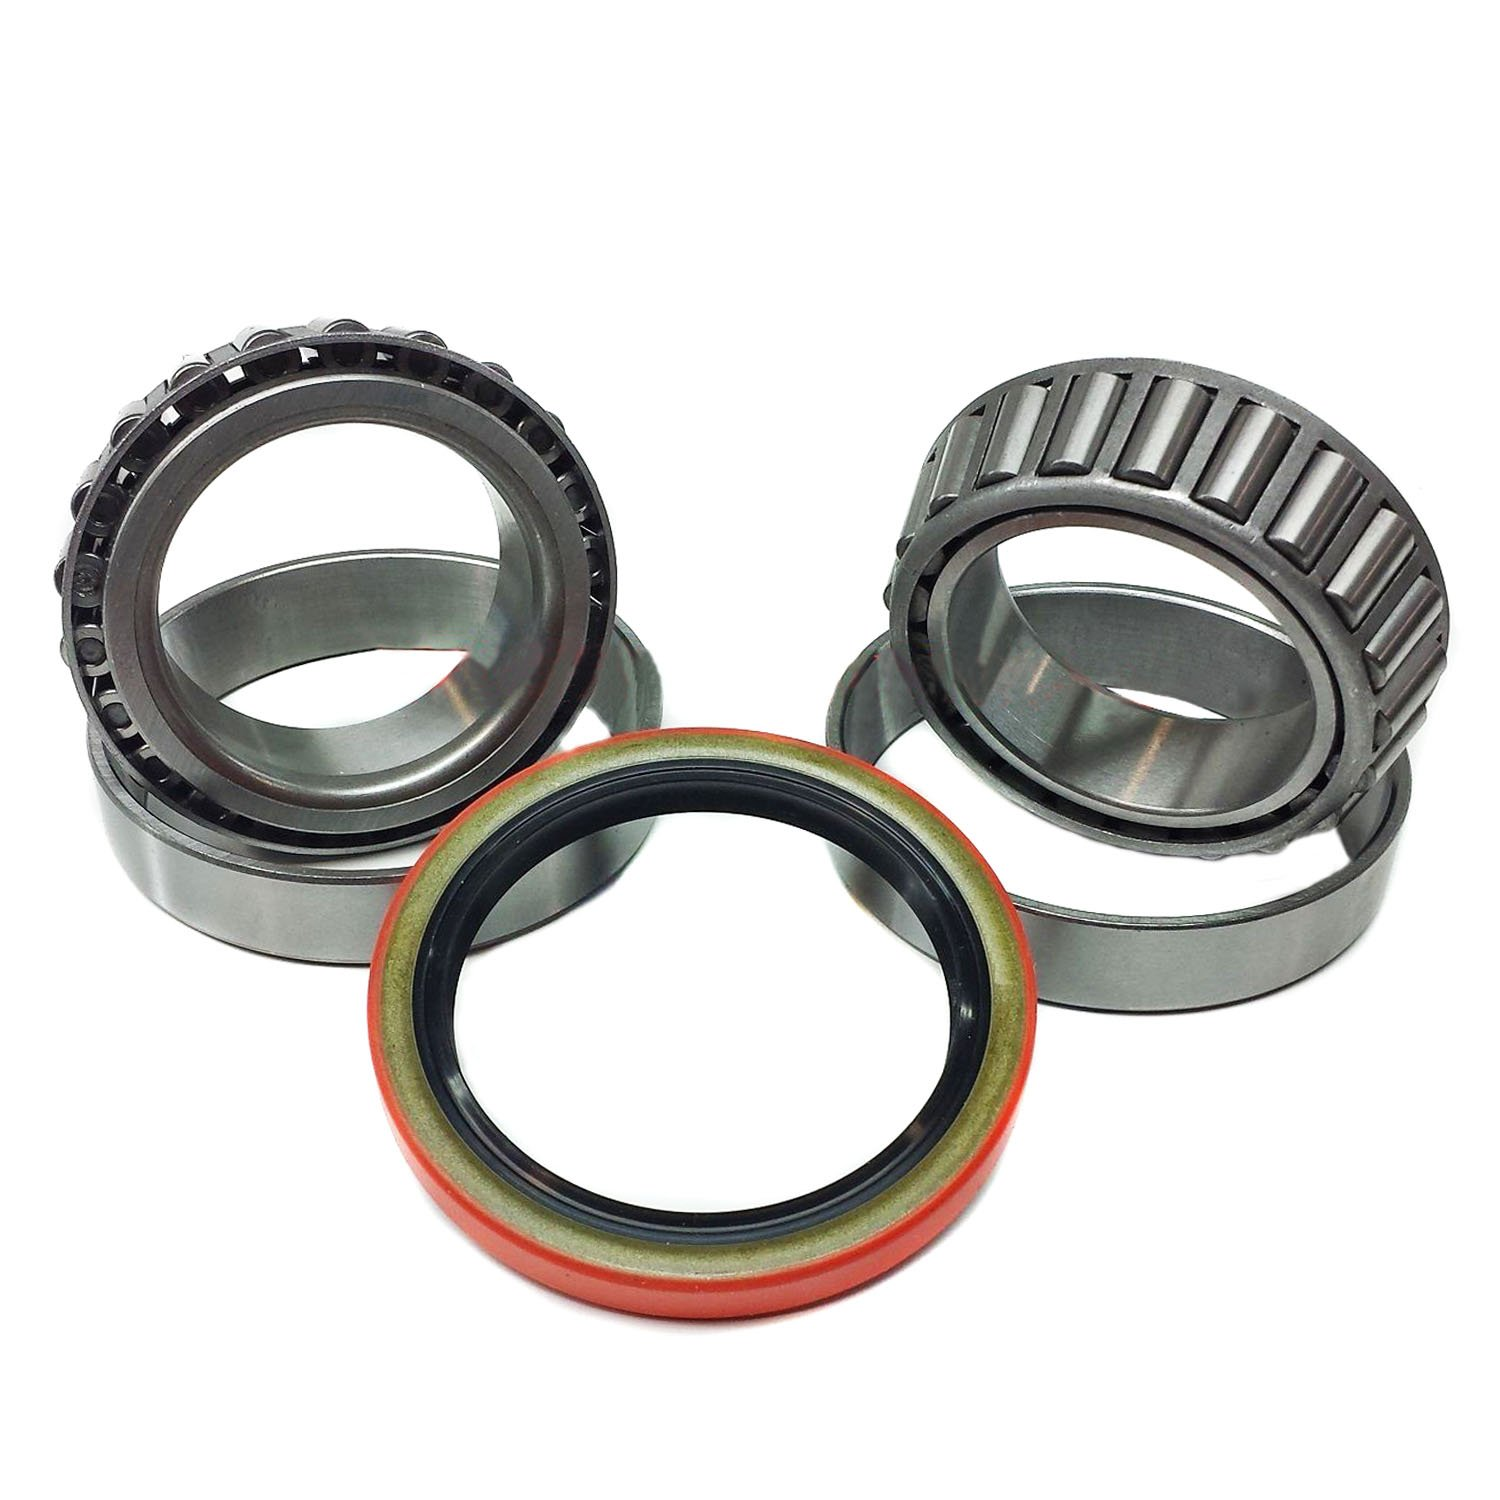 Mover Parts Axle Bearing and Seal Kit for Bobcat Skid Steer 645 653 700 720 721 722 730 731 732 741 742 743 751 753 763 773 7753 873 963 S130 S150 S160 S175 S185 S205 S510 S530 S550 S570 S590